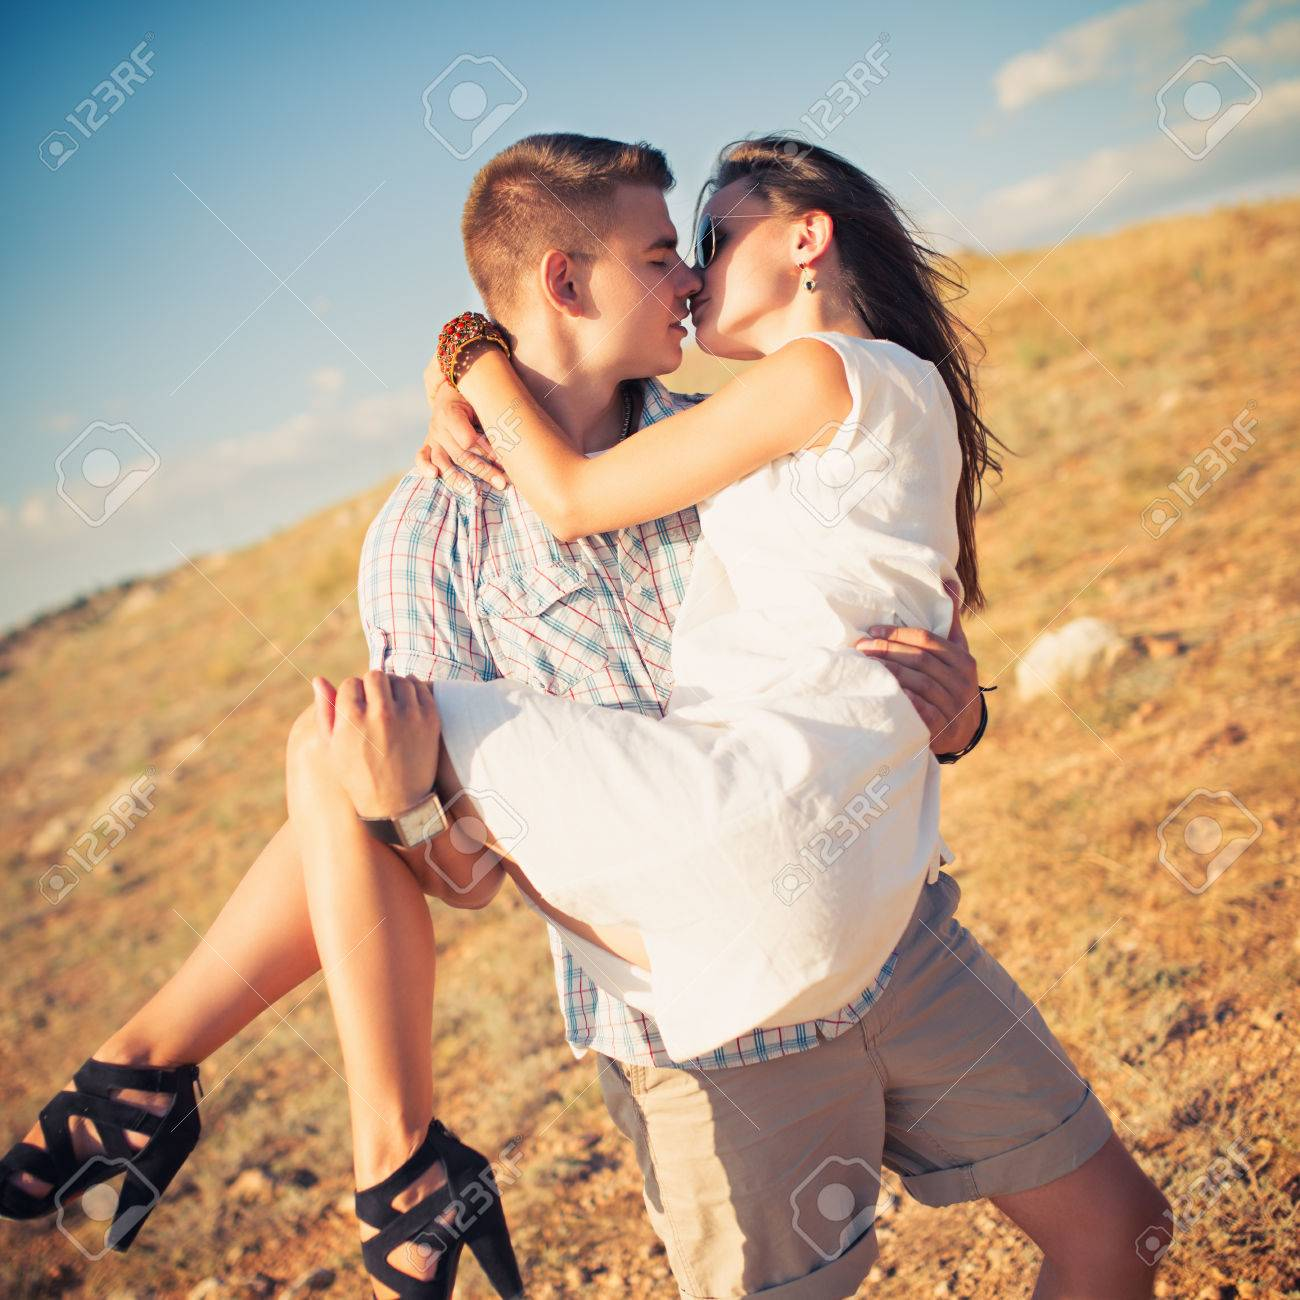 Stock photo young couple in love outdoor photo with instagram style filters